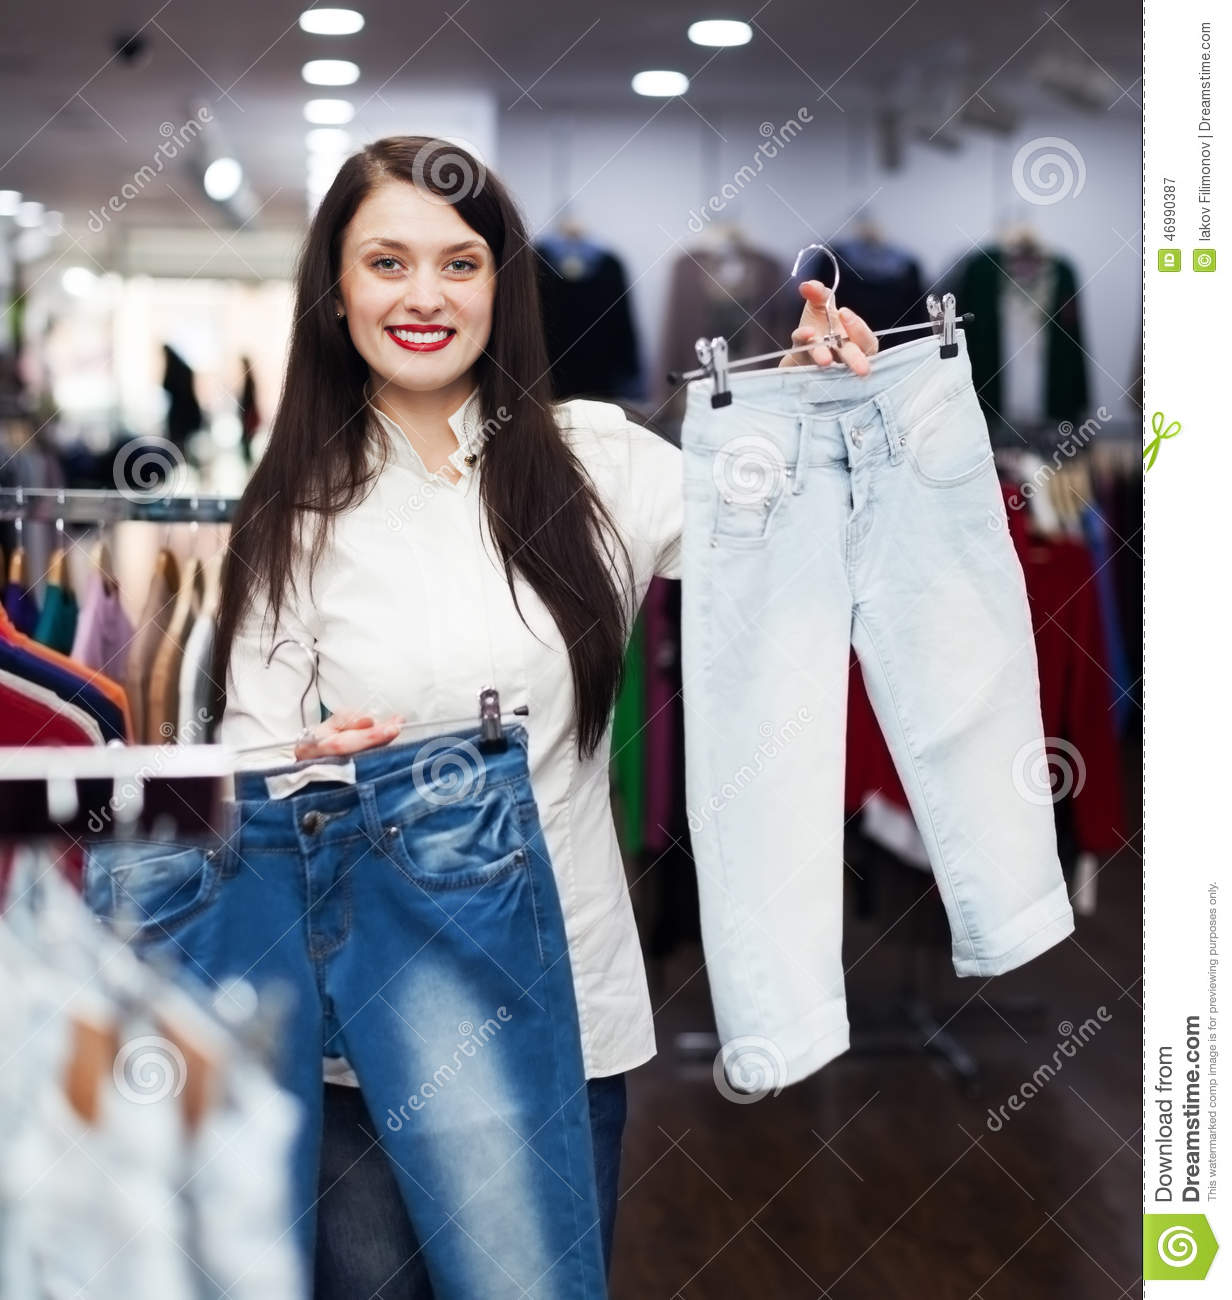 Girl Choosing Jeans At Store Stock Photo